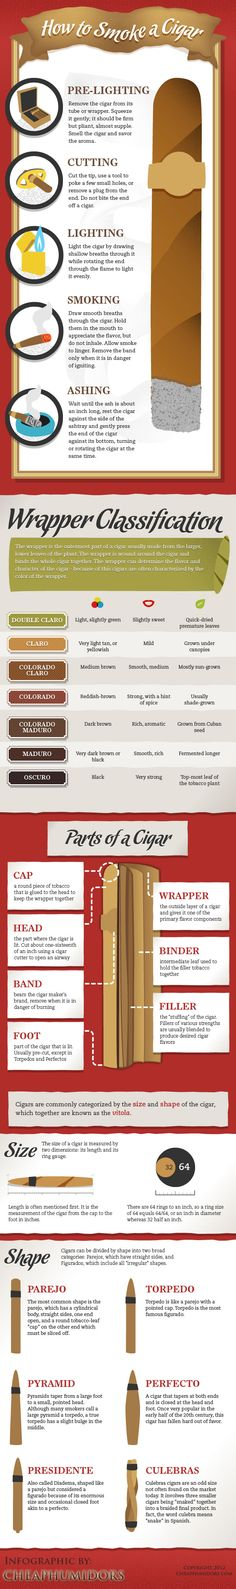 How-to-Smoke-a-Cigar